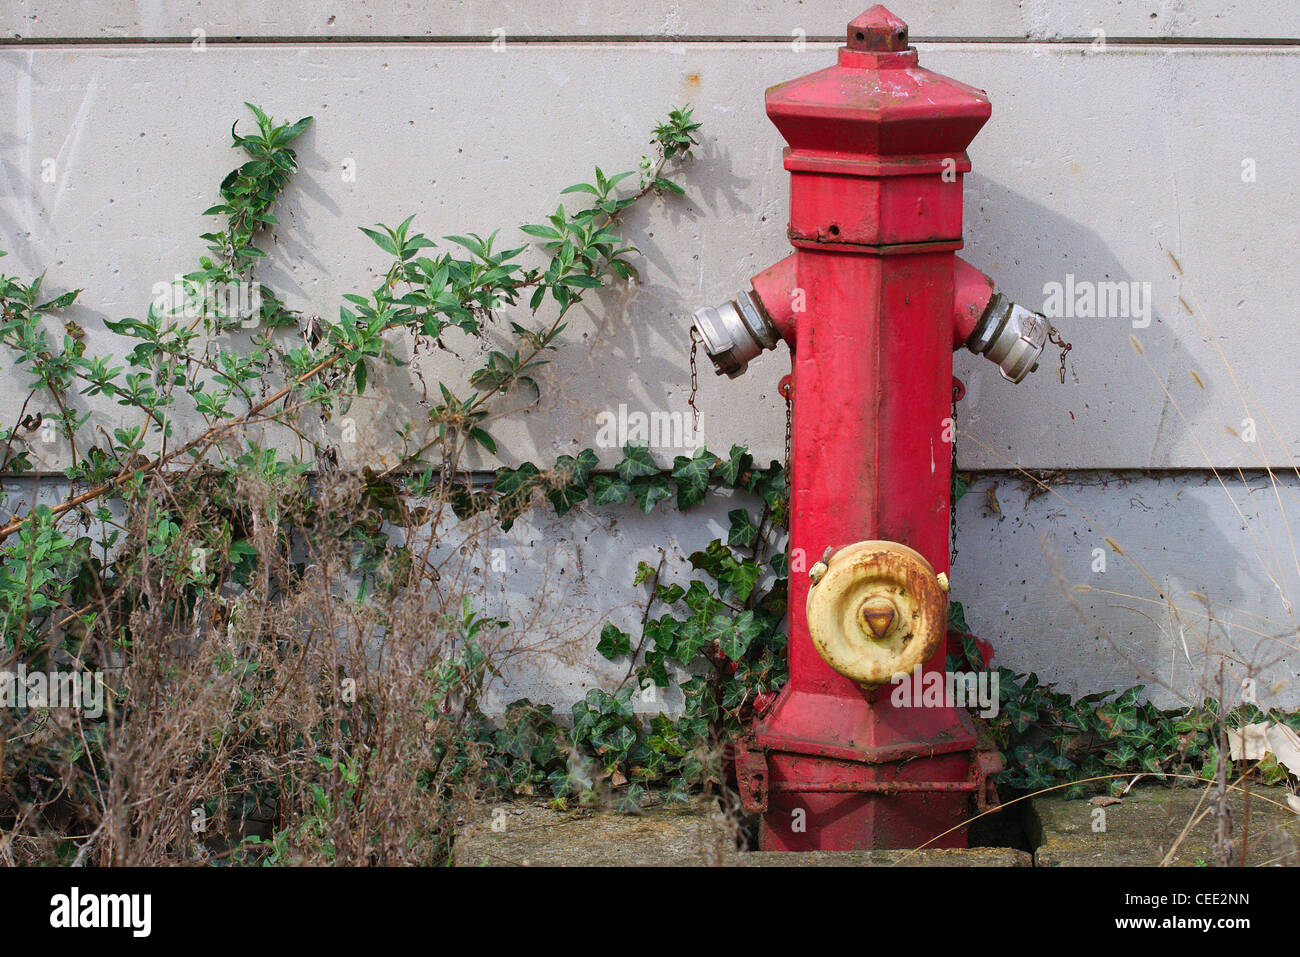 Waterpoint for firebrigade out of order - Stock Image